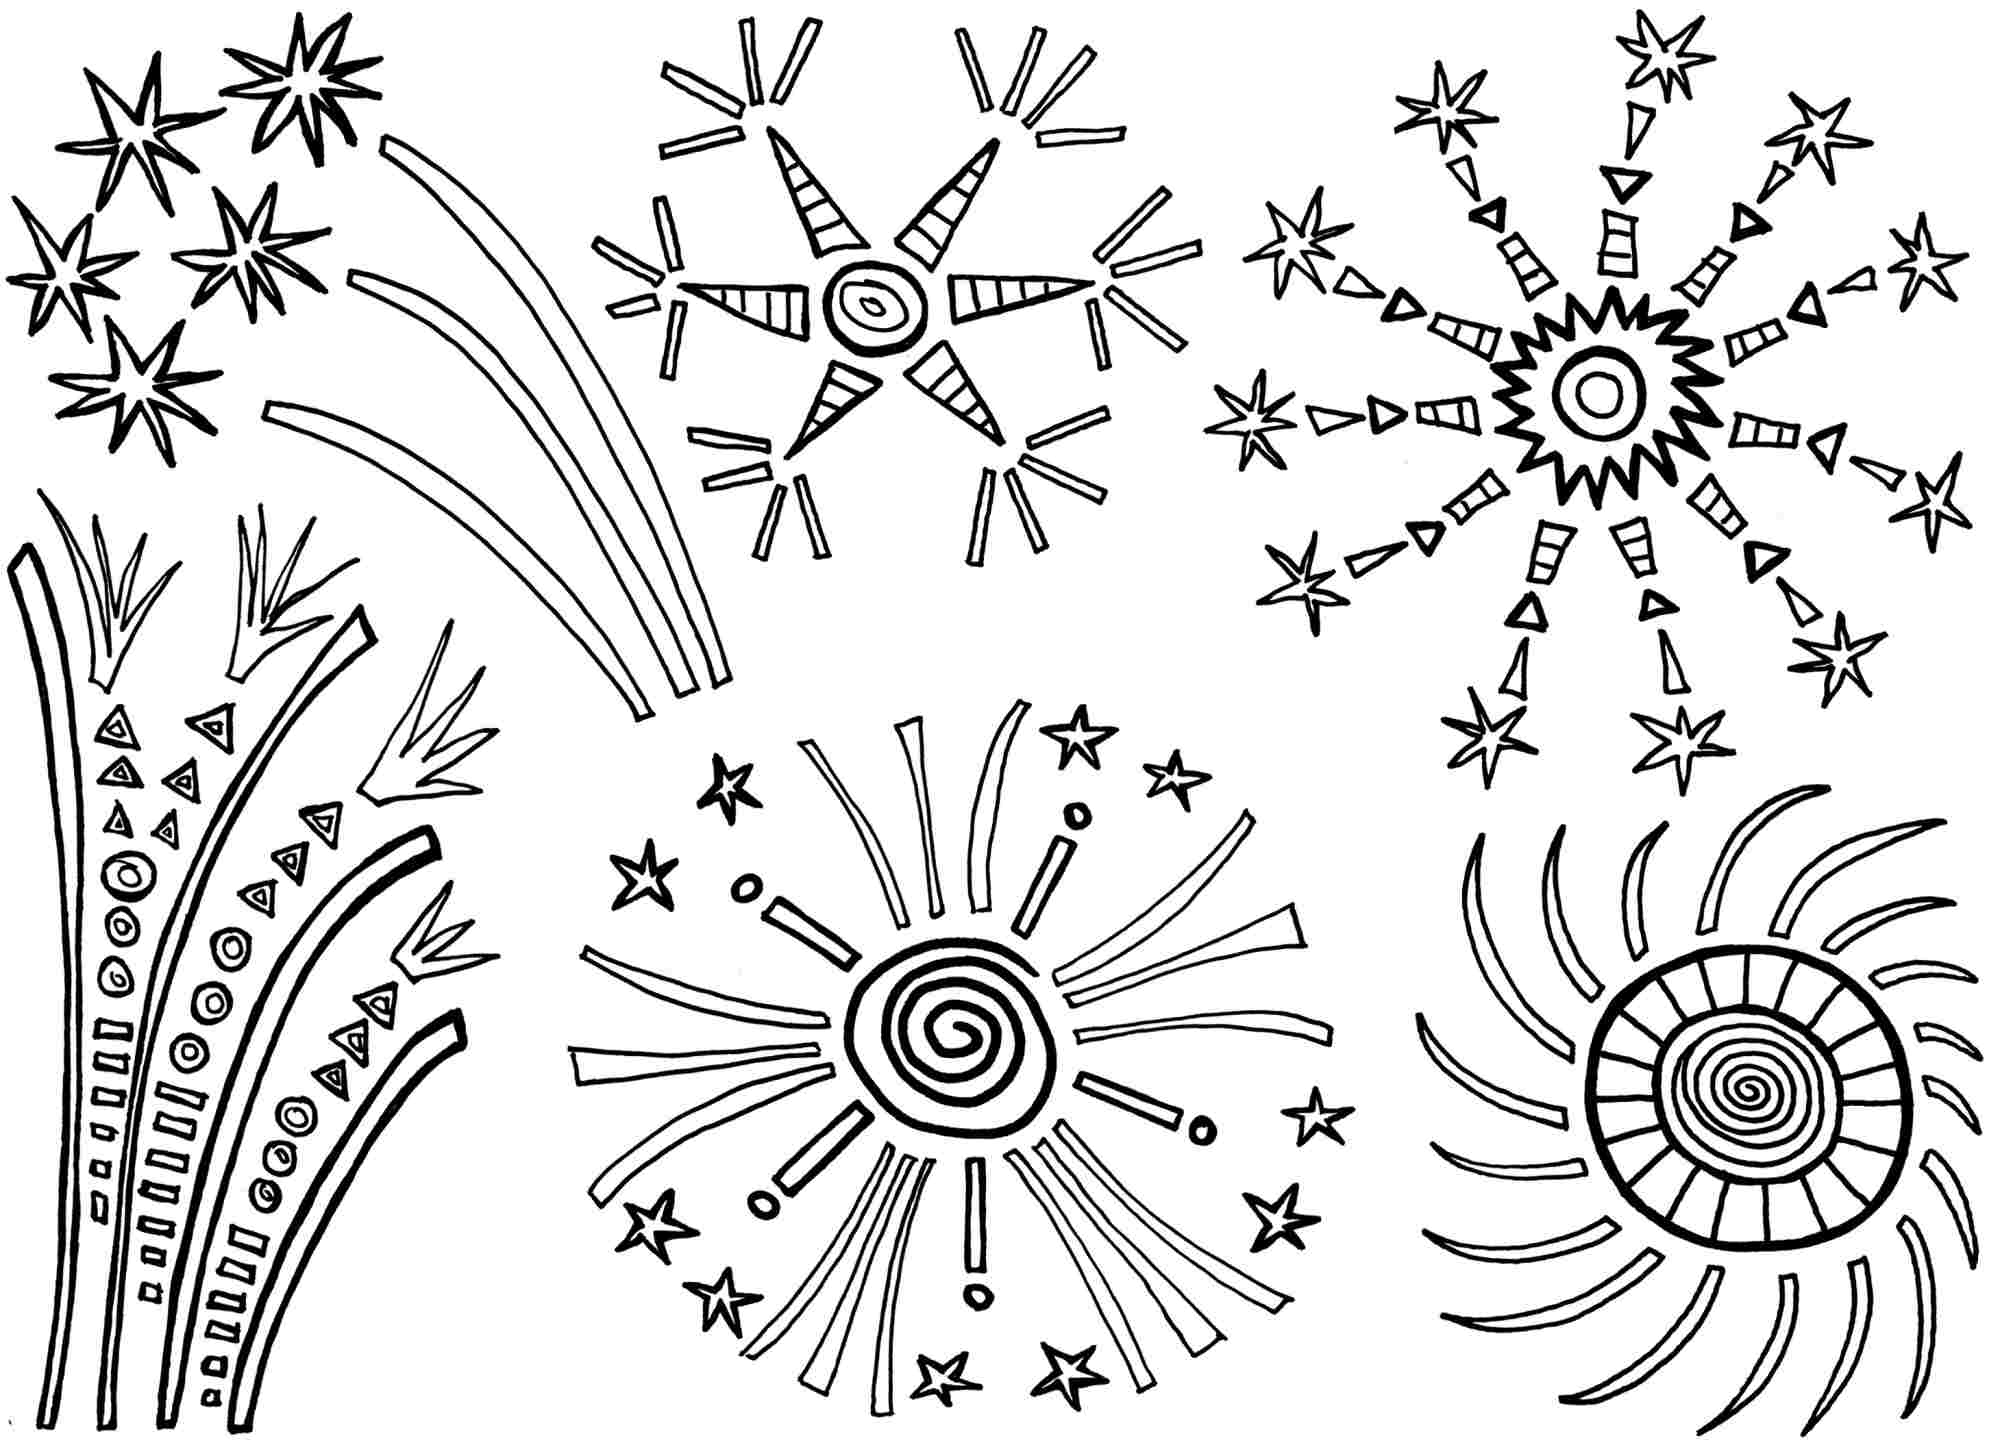 Preschool coloring games online free - Free Printable Fireworks Coloring Pages For Kids